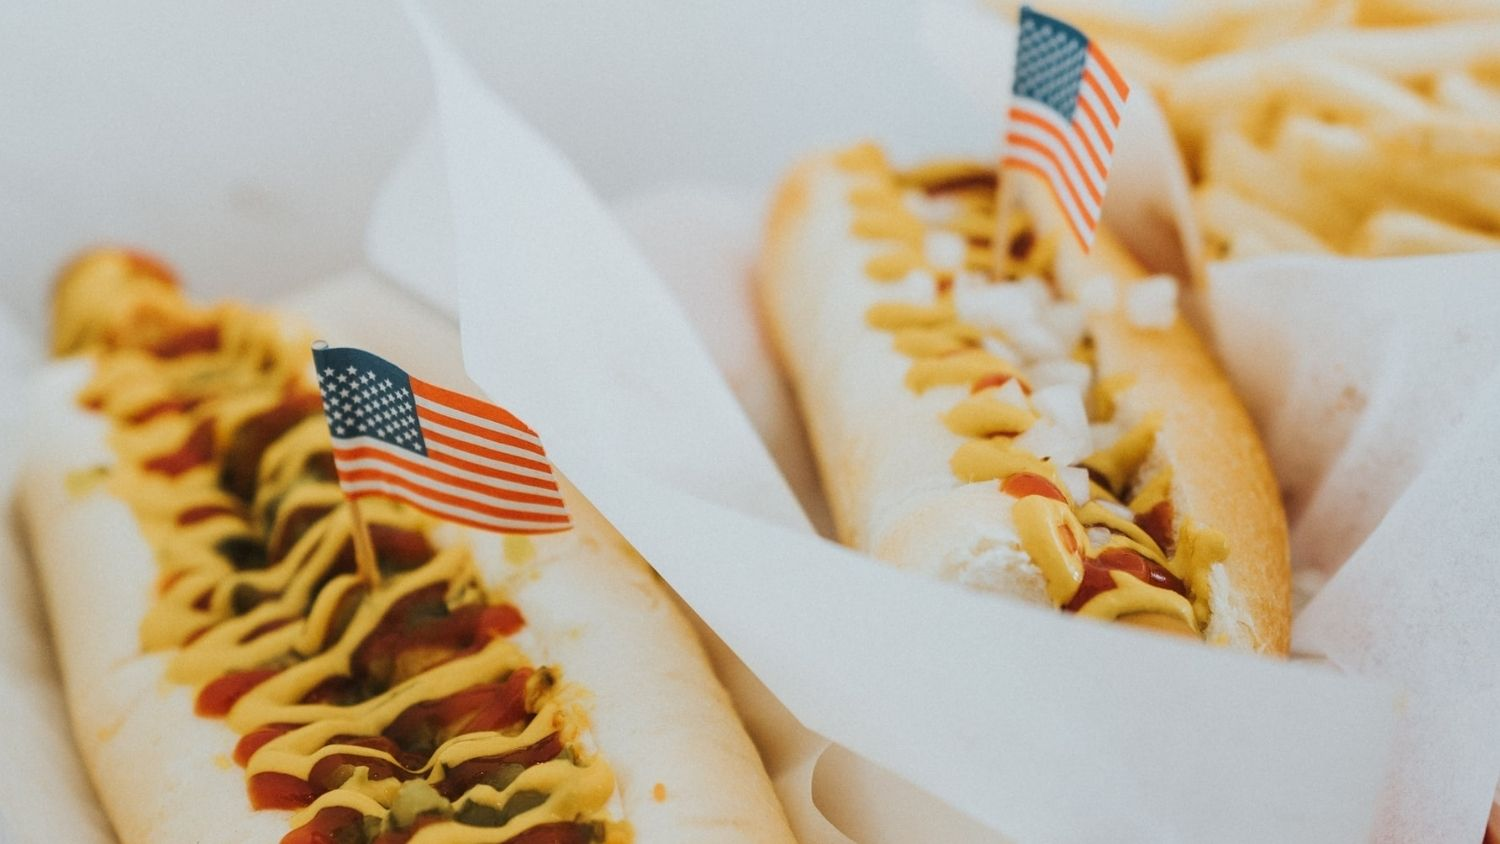 Hot dogs with American flag decorations.